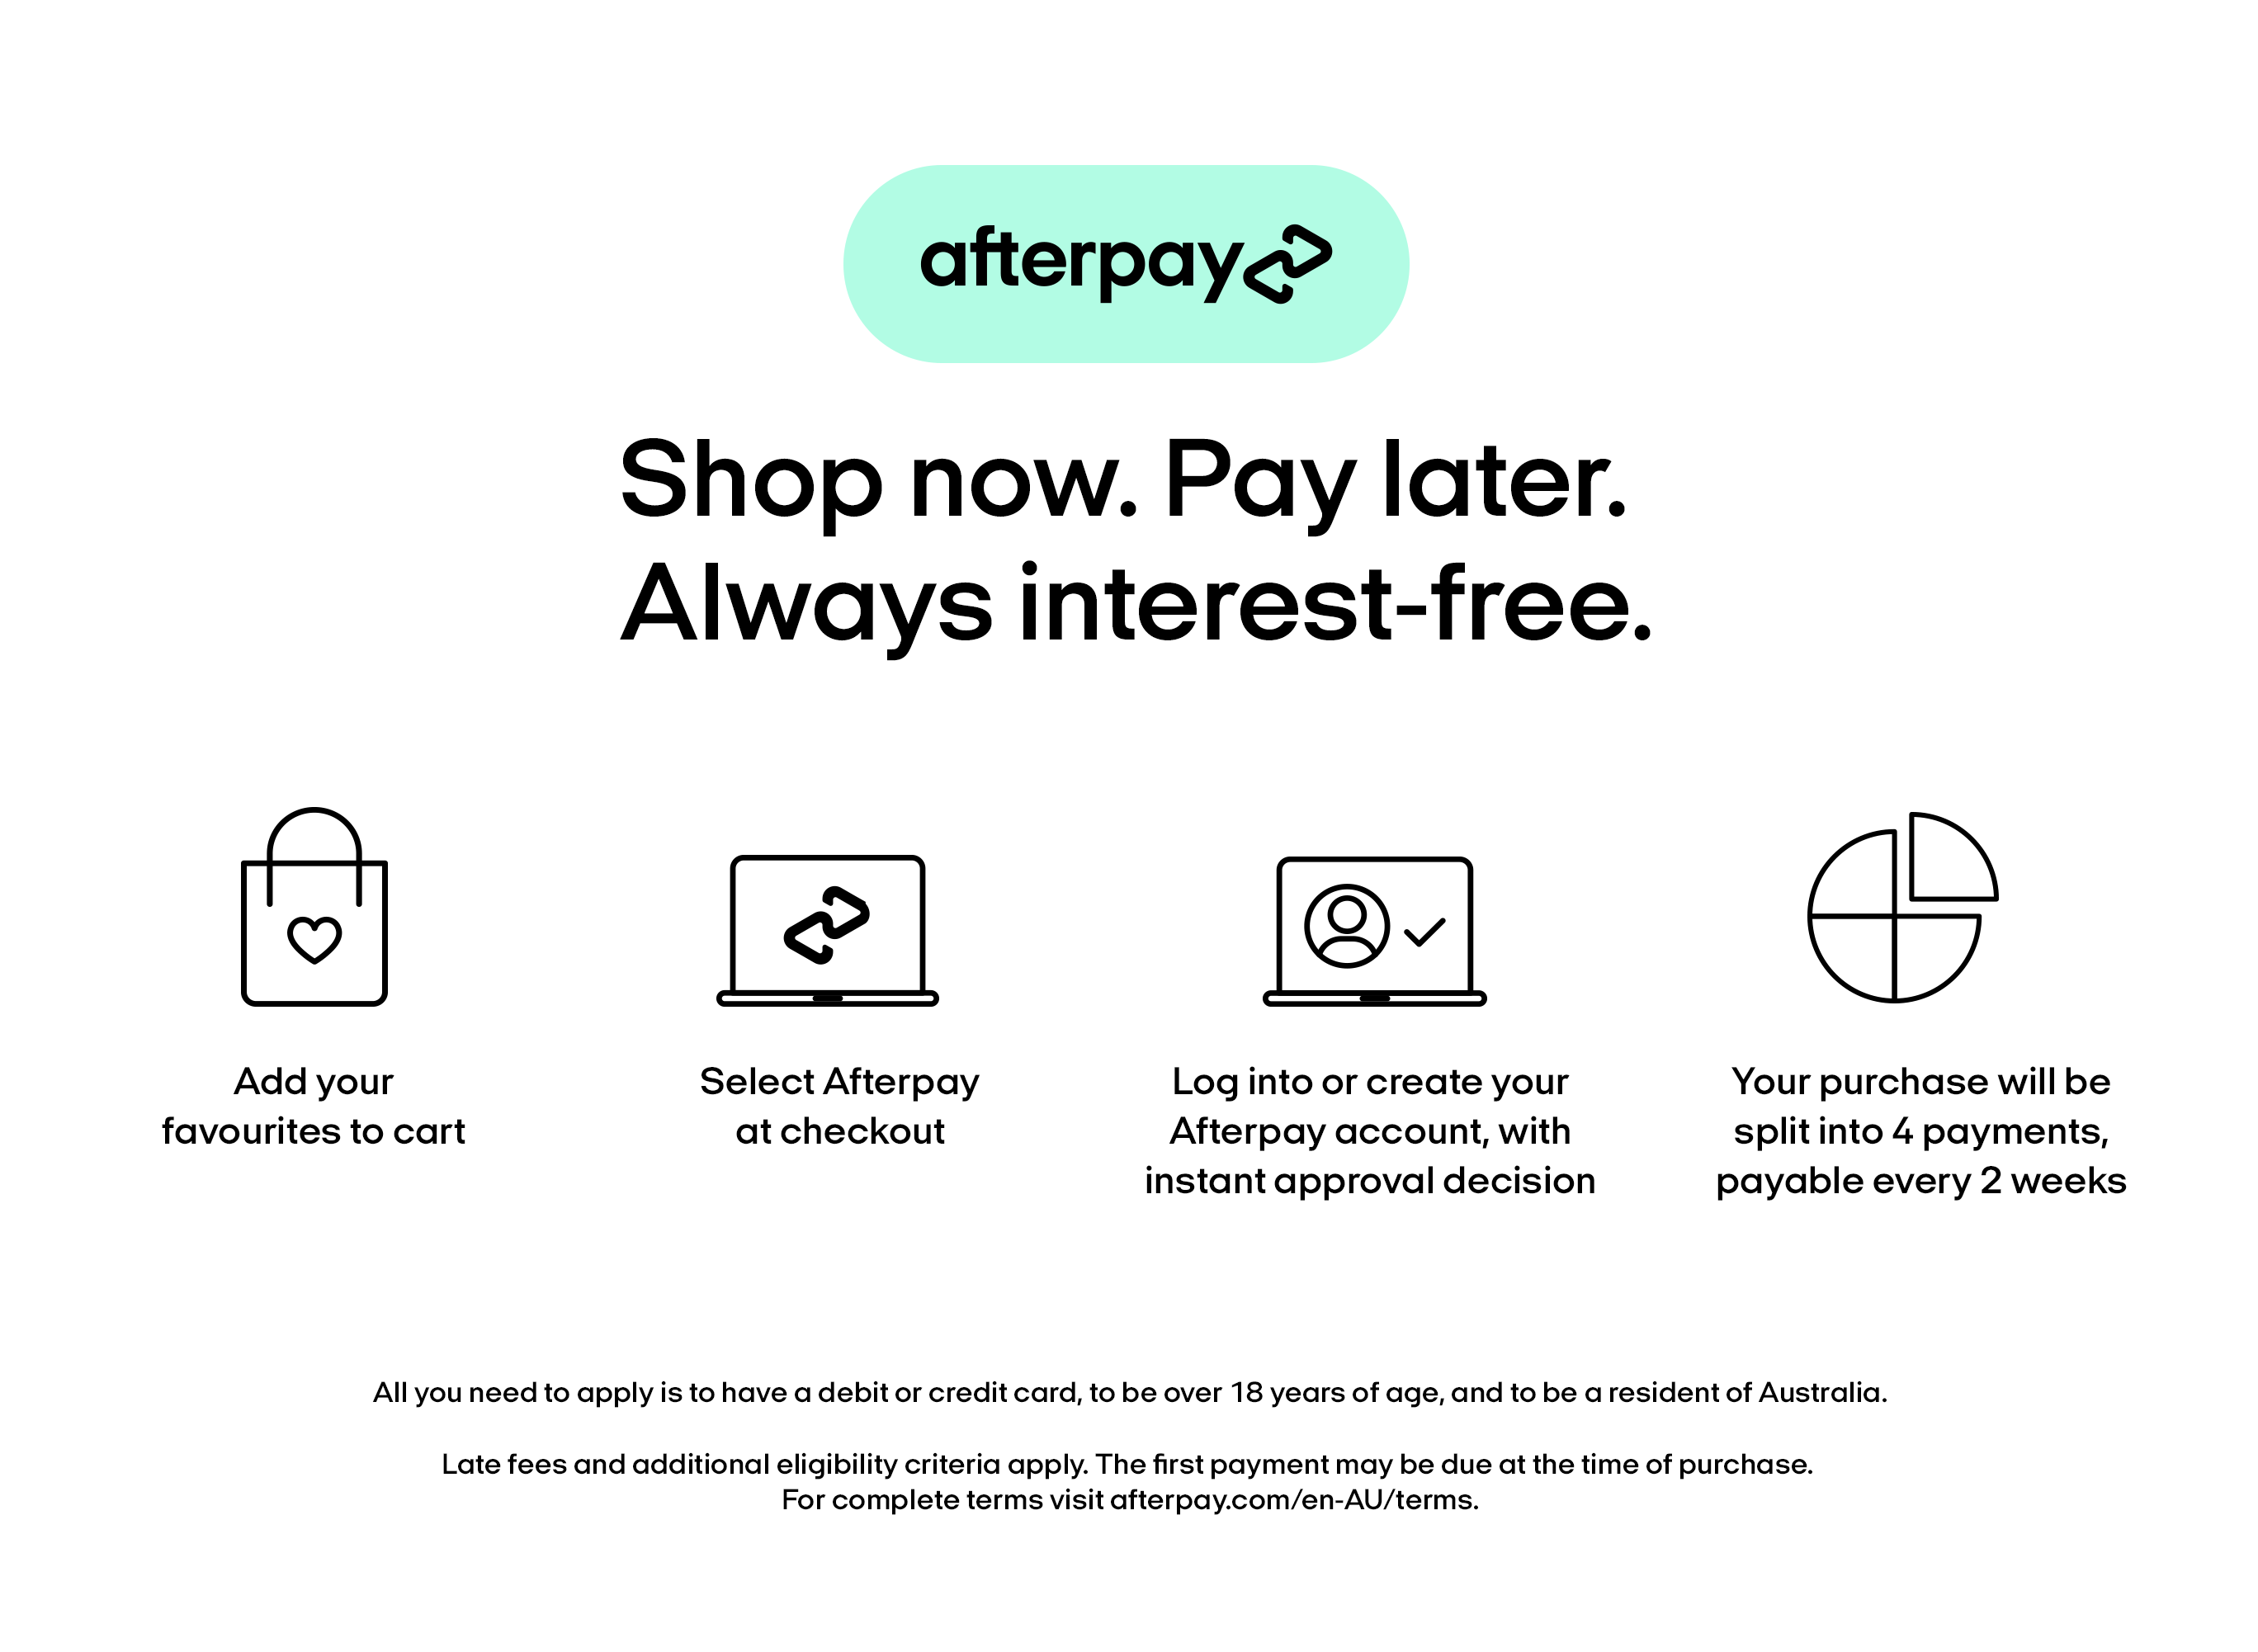 For Afterpay terms, go to afterpay.com/en-AU/terms